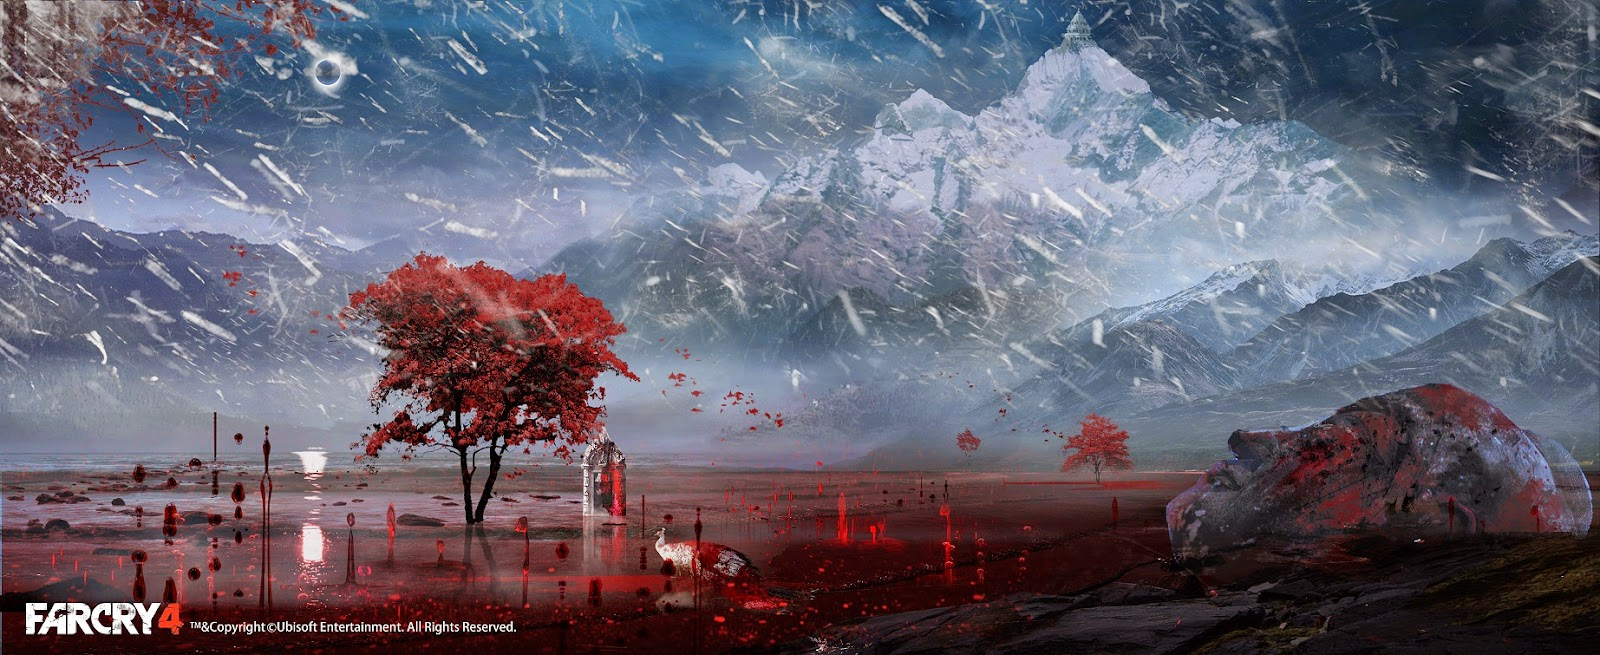 Far Cry 4 Concept Art Is The Reason Why Its A Beautiful Game VG247